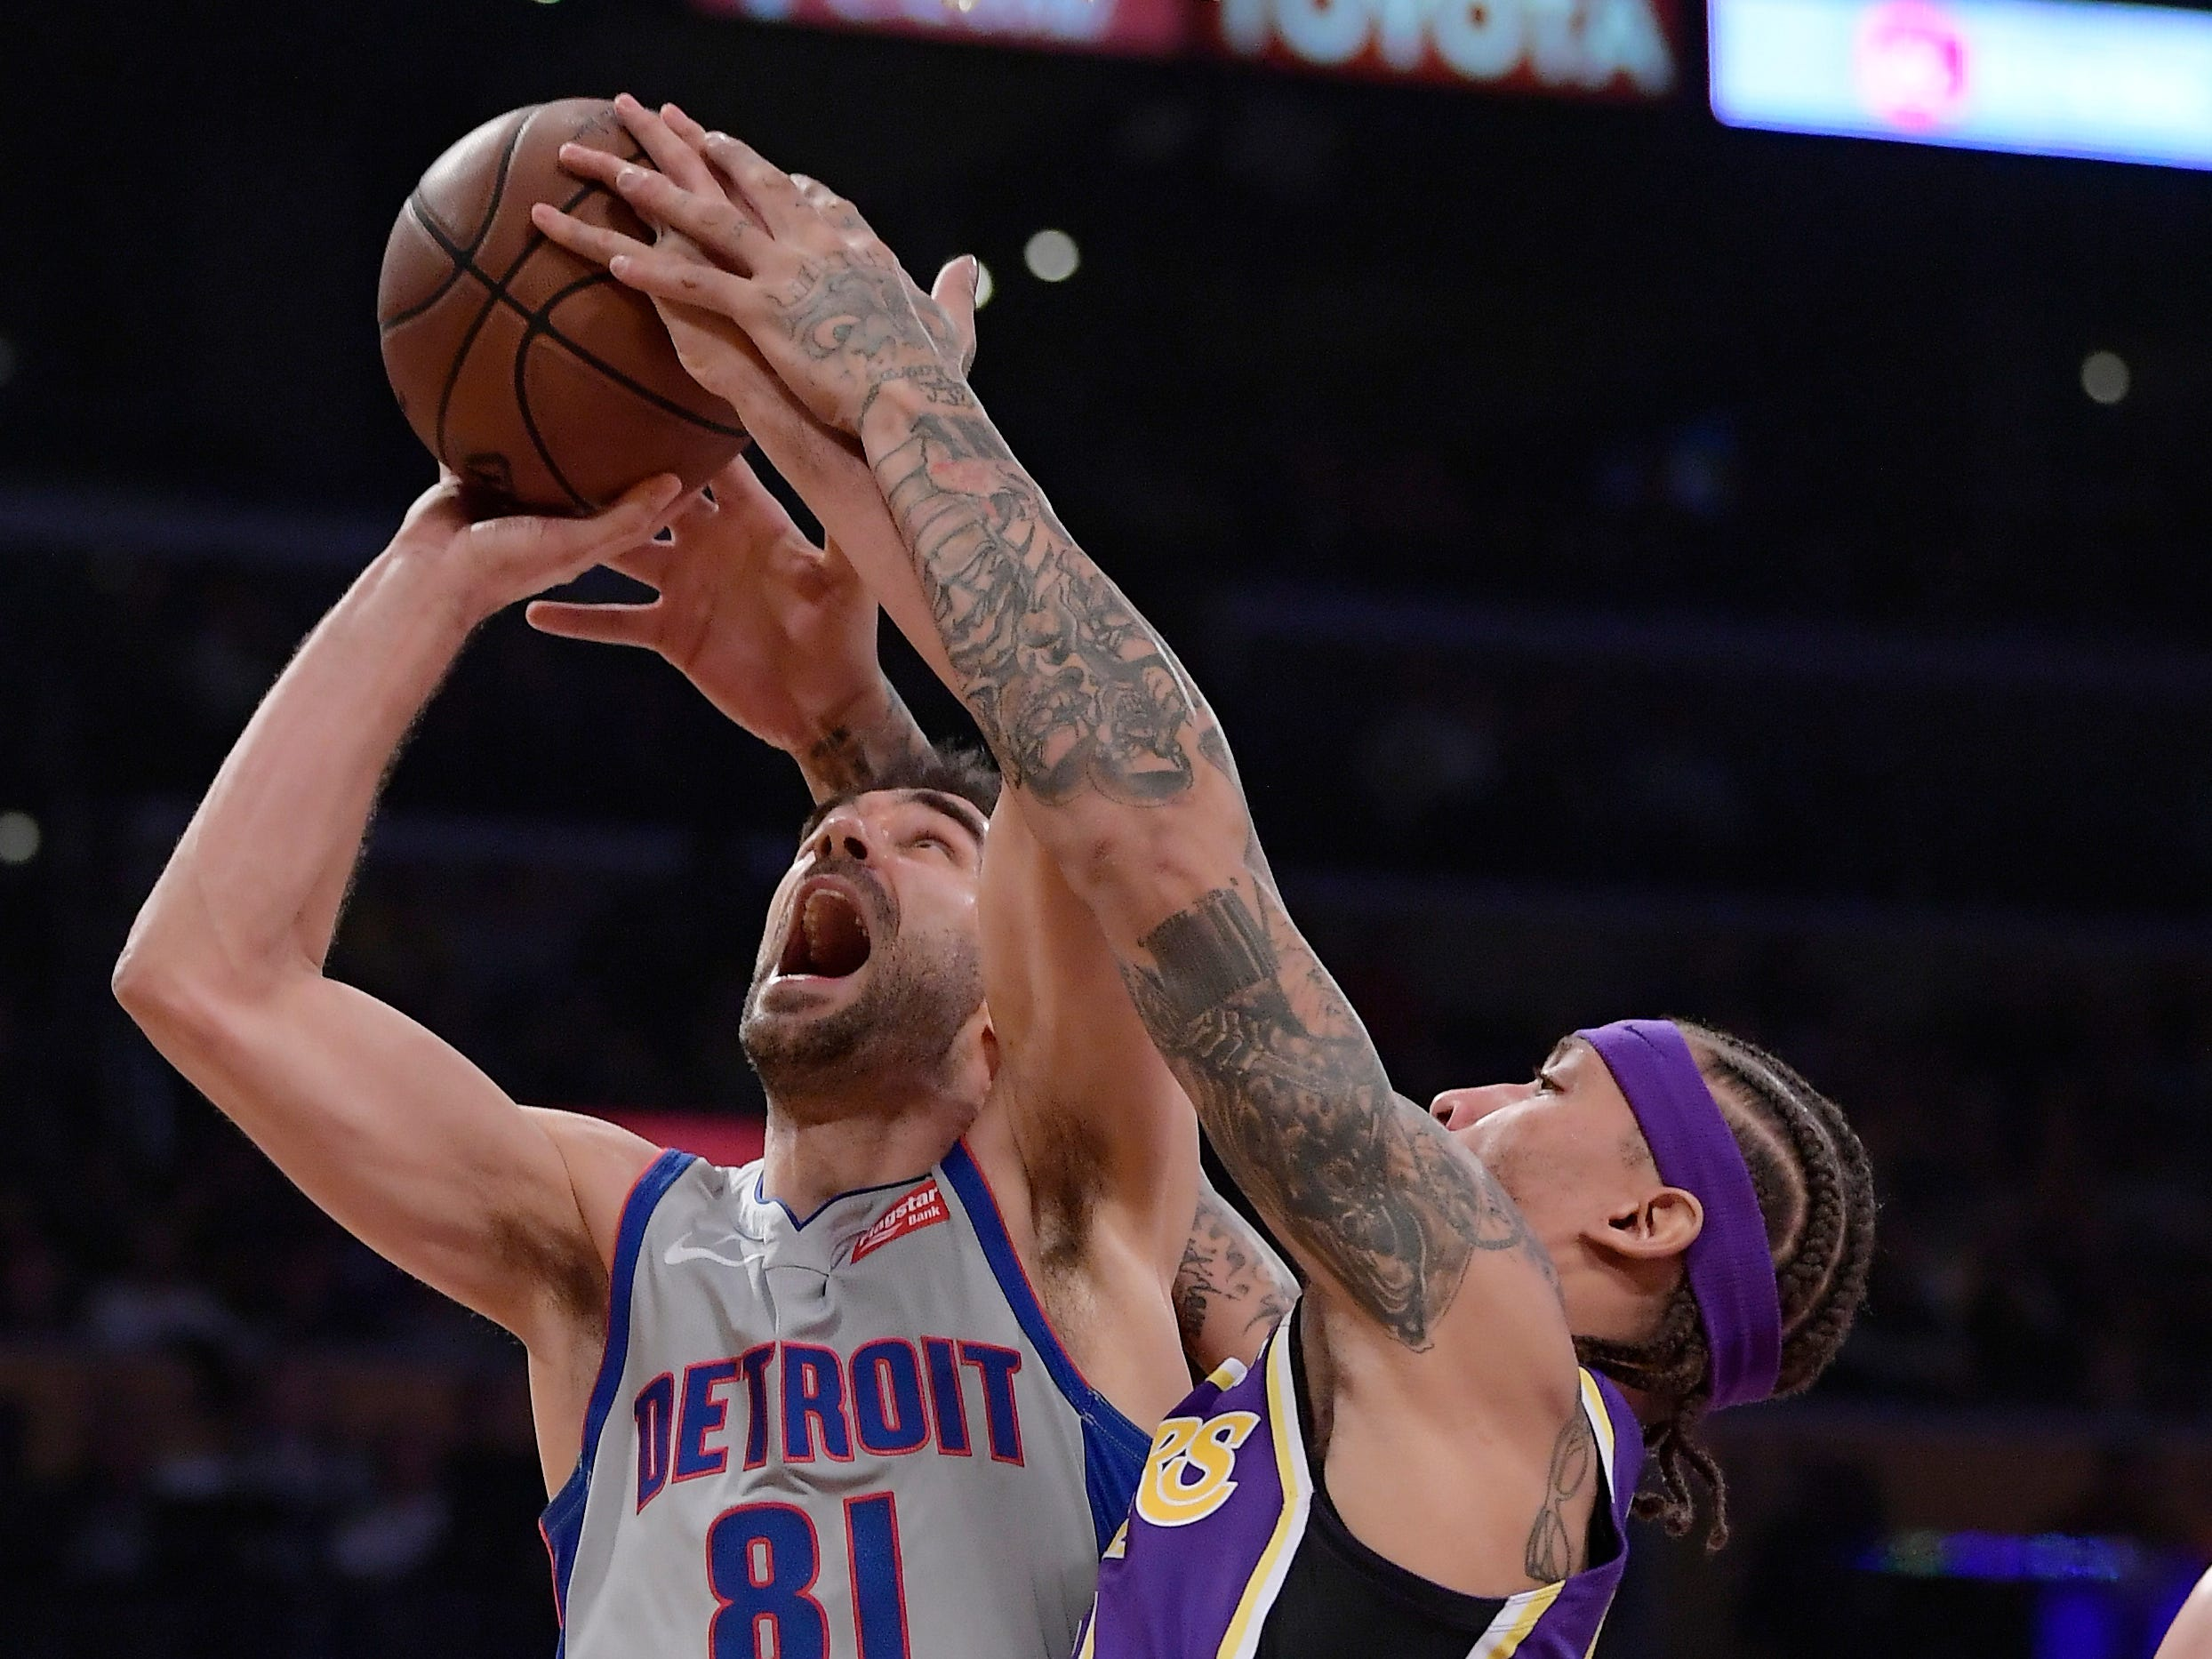 Los Angeles Lakers forward Michael Beasley, right, ties up Detroit Pistons guard Jose Calderon as Calderon tries to shoot during the first half of an NBA basketball game Wednesday, Jan. 9, 2019, in Los Angeles.